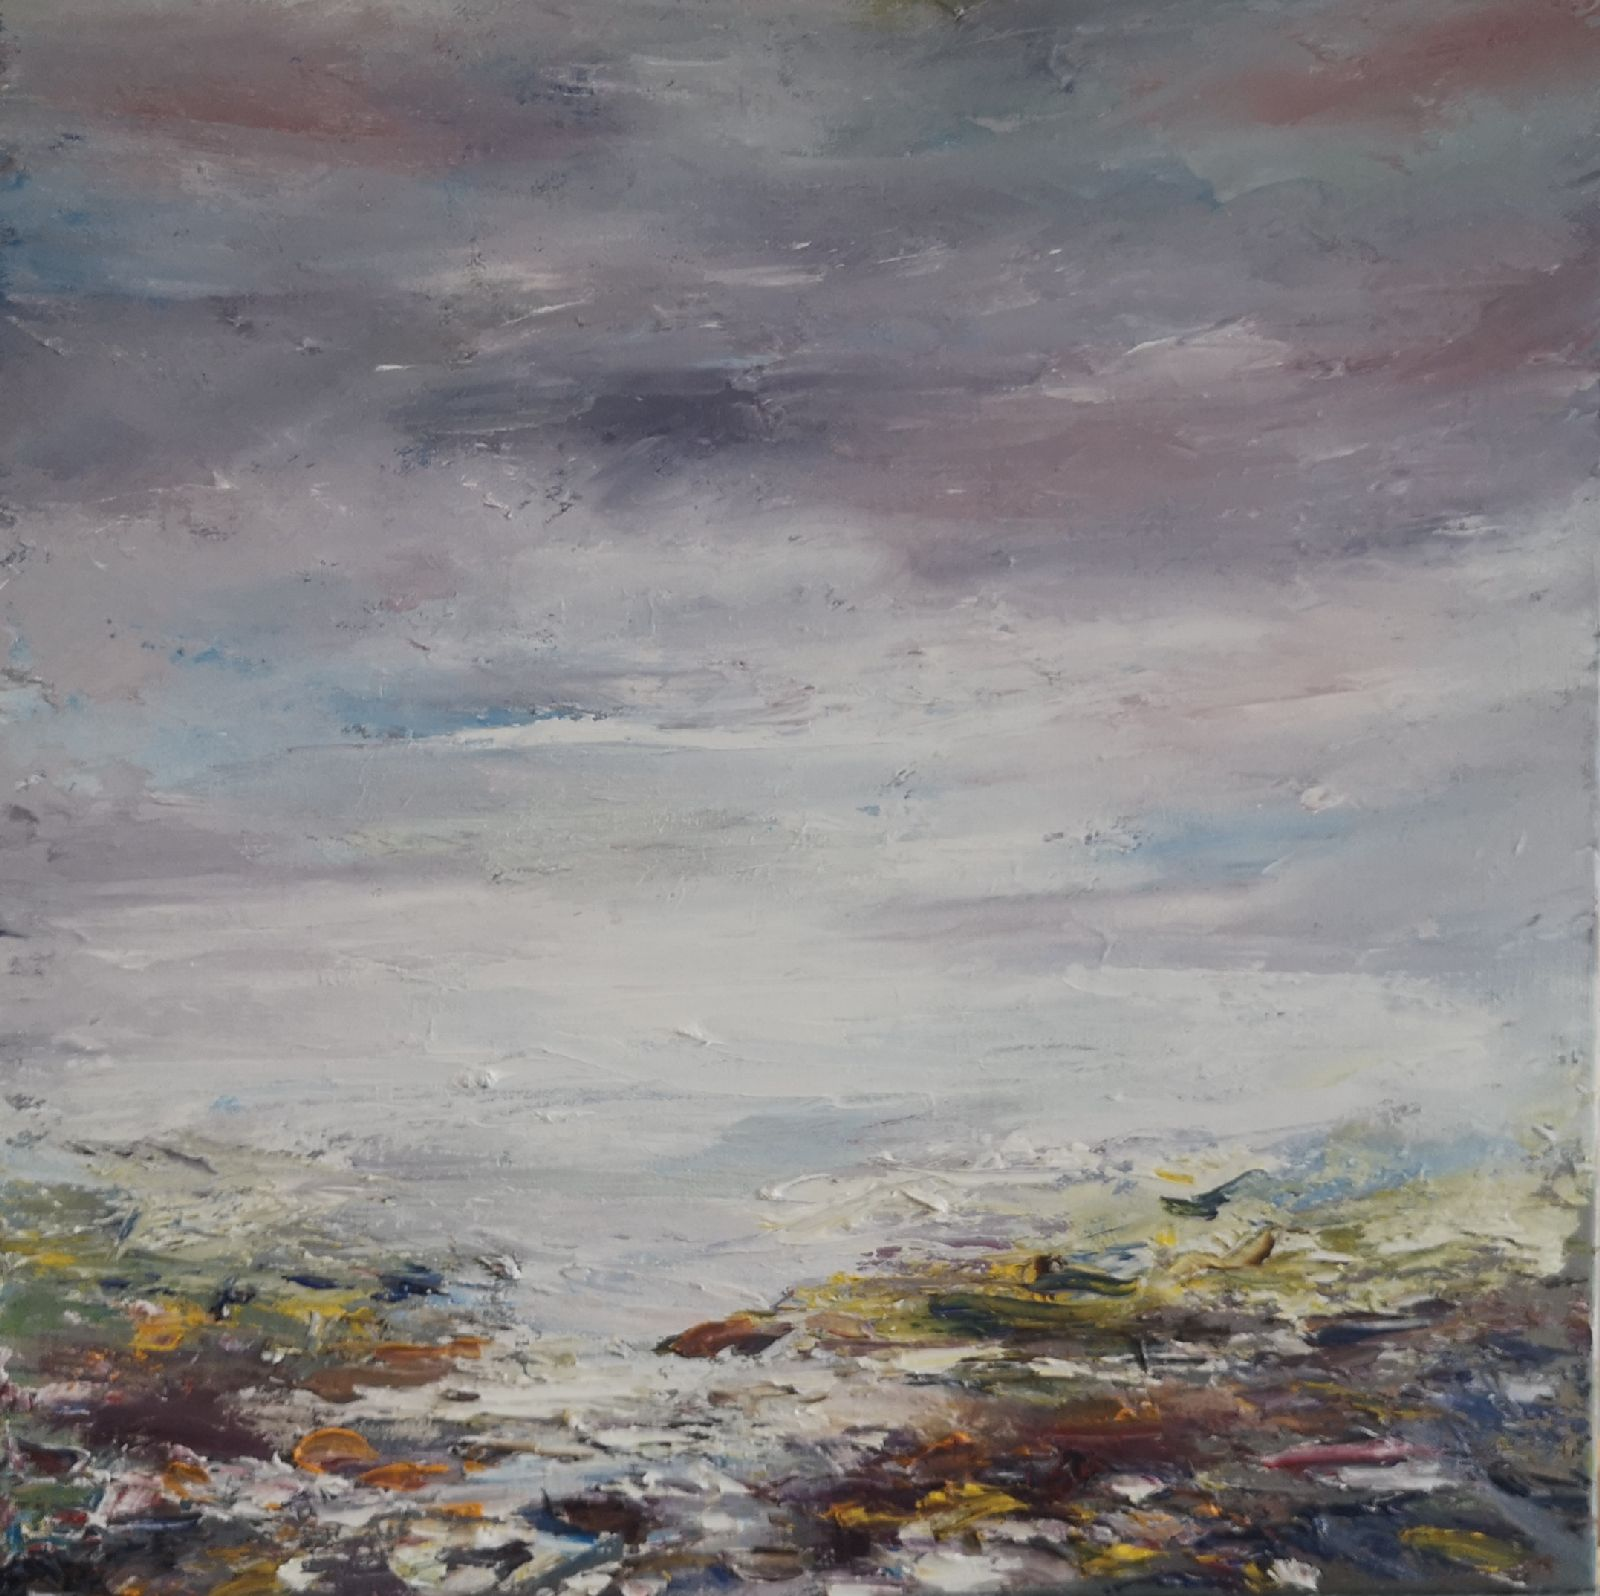 Moody Sky by Eithne Ryan